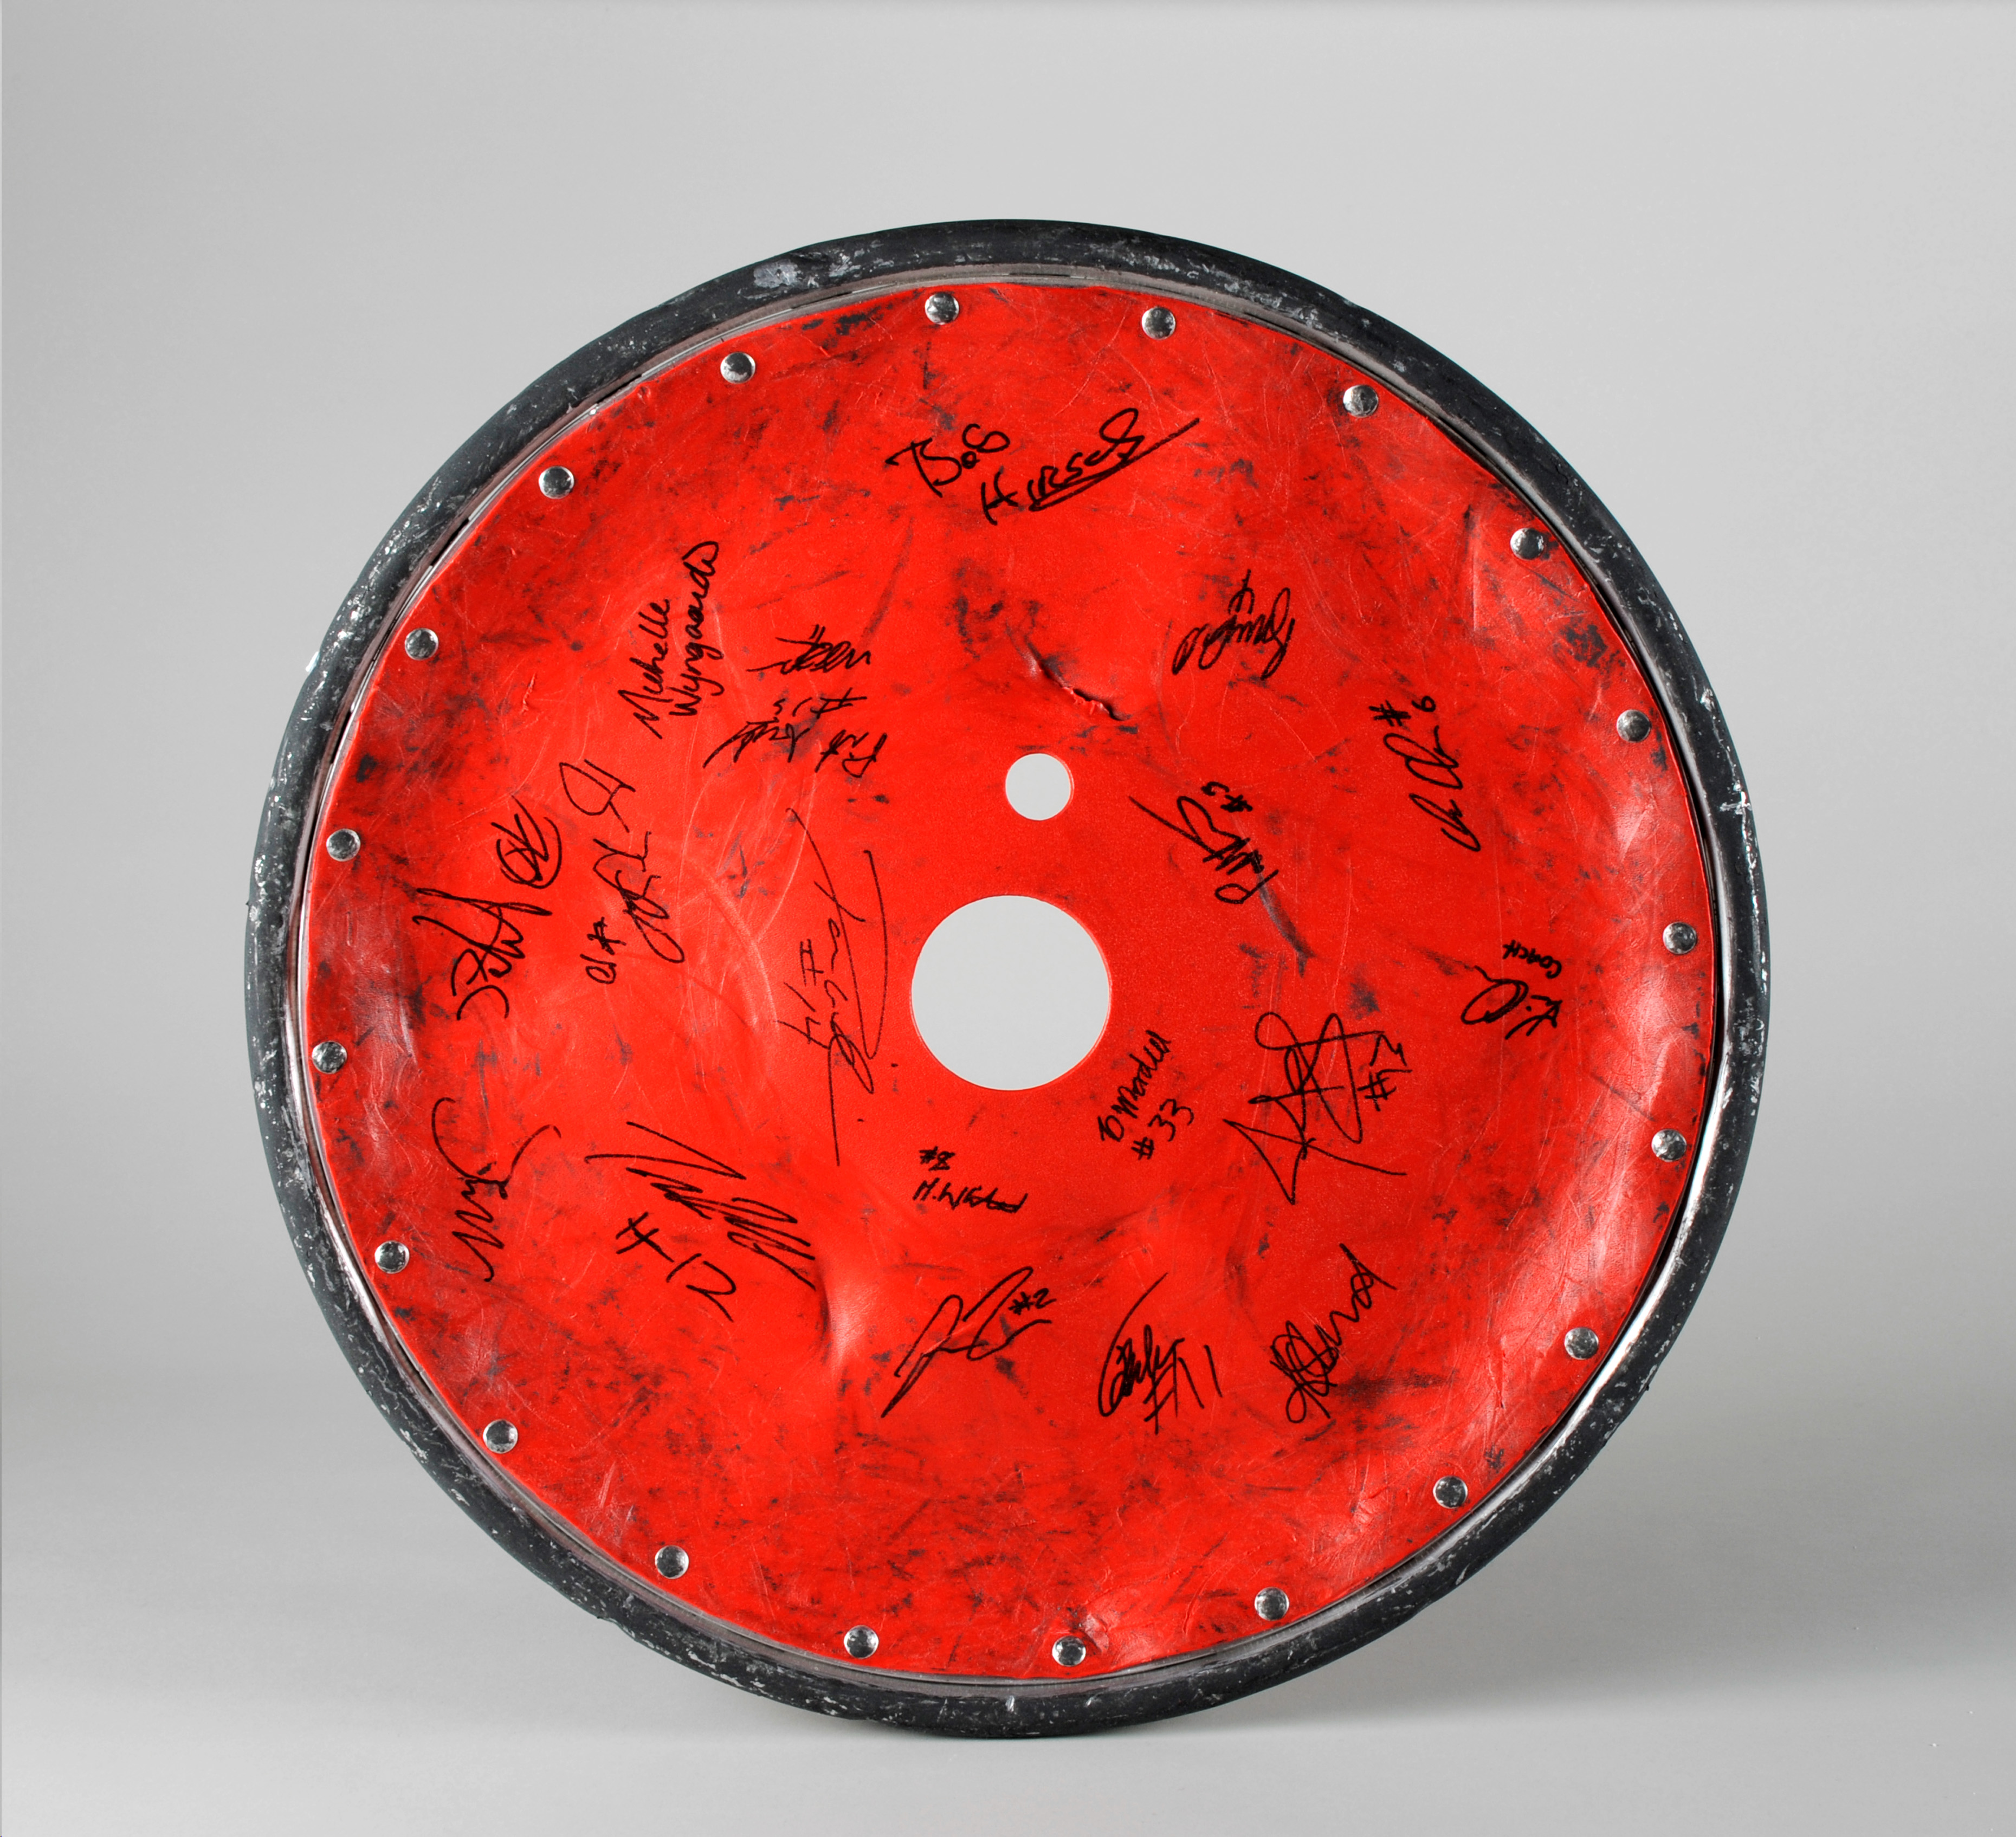 Colour photograph of a wheel, with a red plastic guard. The guard is covered in dents and is ripped.